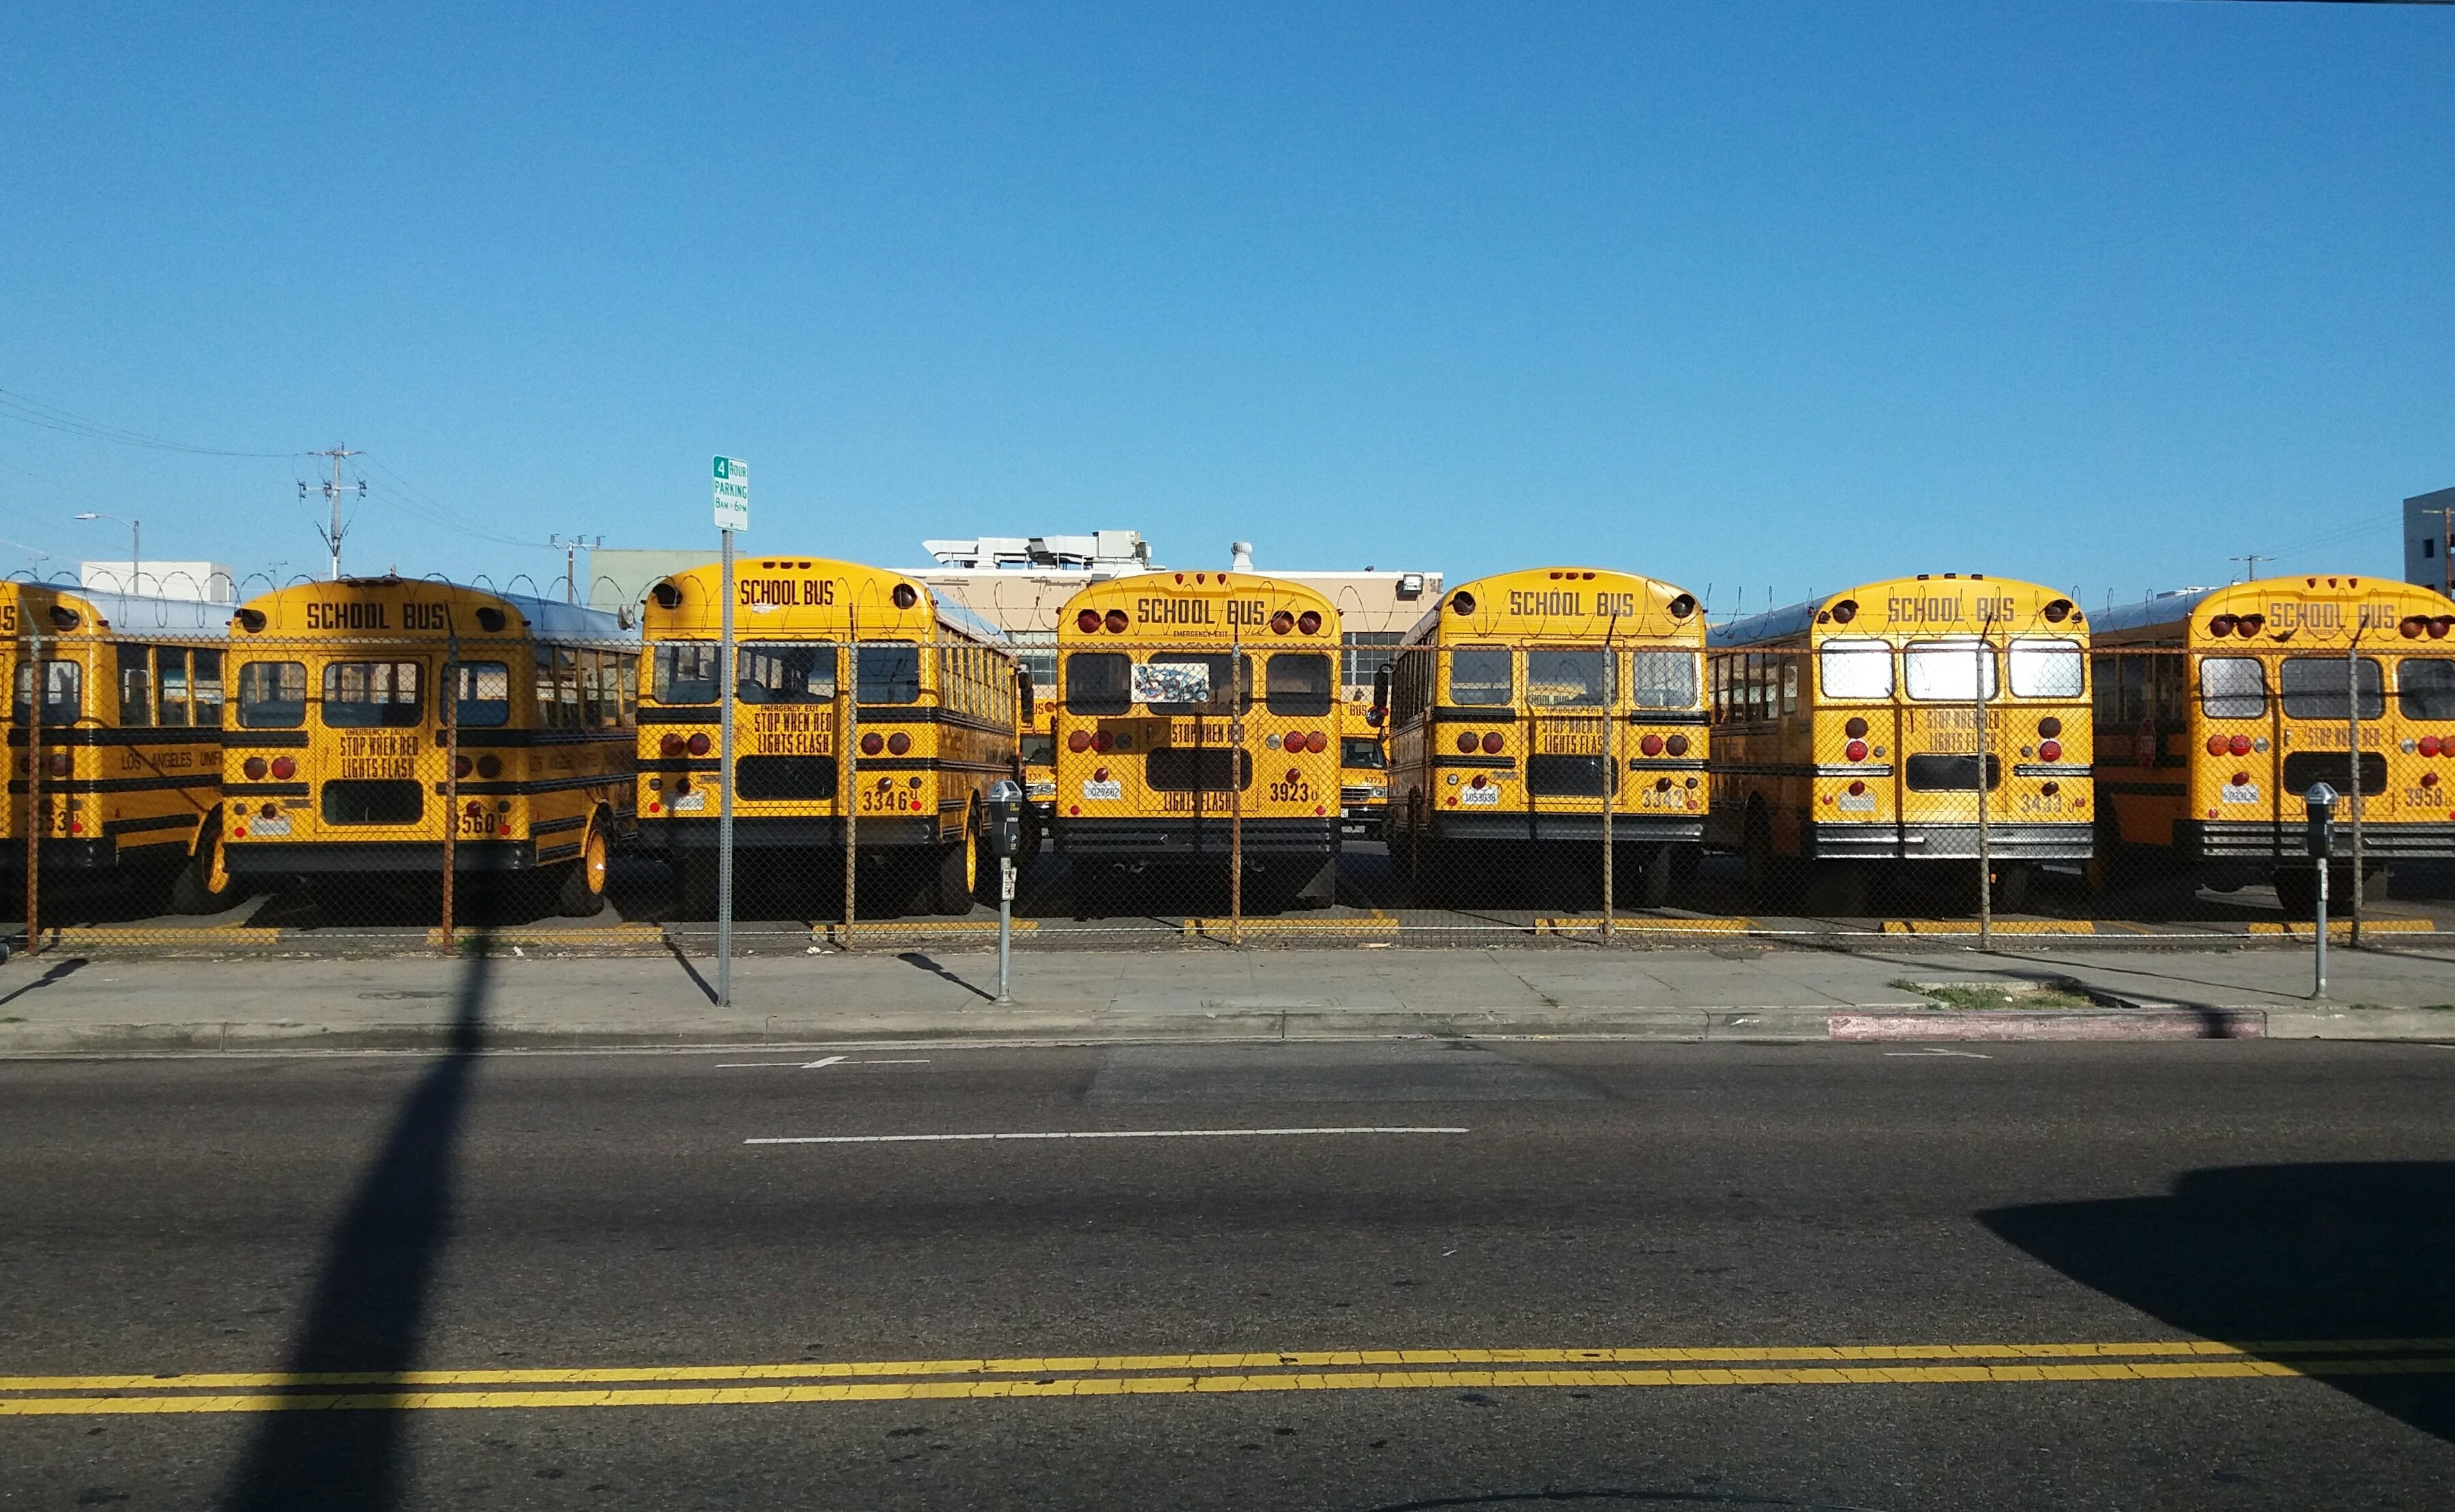 photo of yellow bus park on parking lot